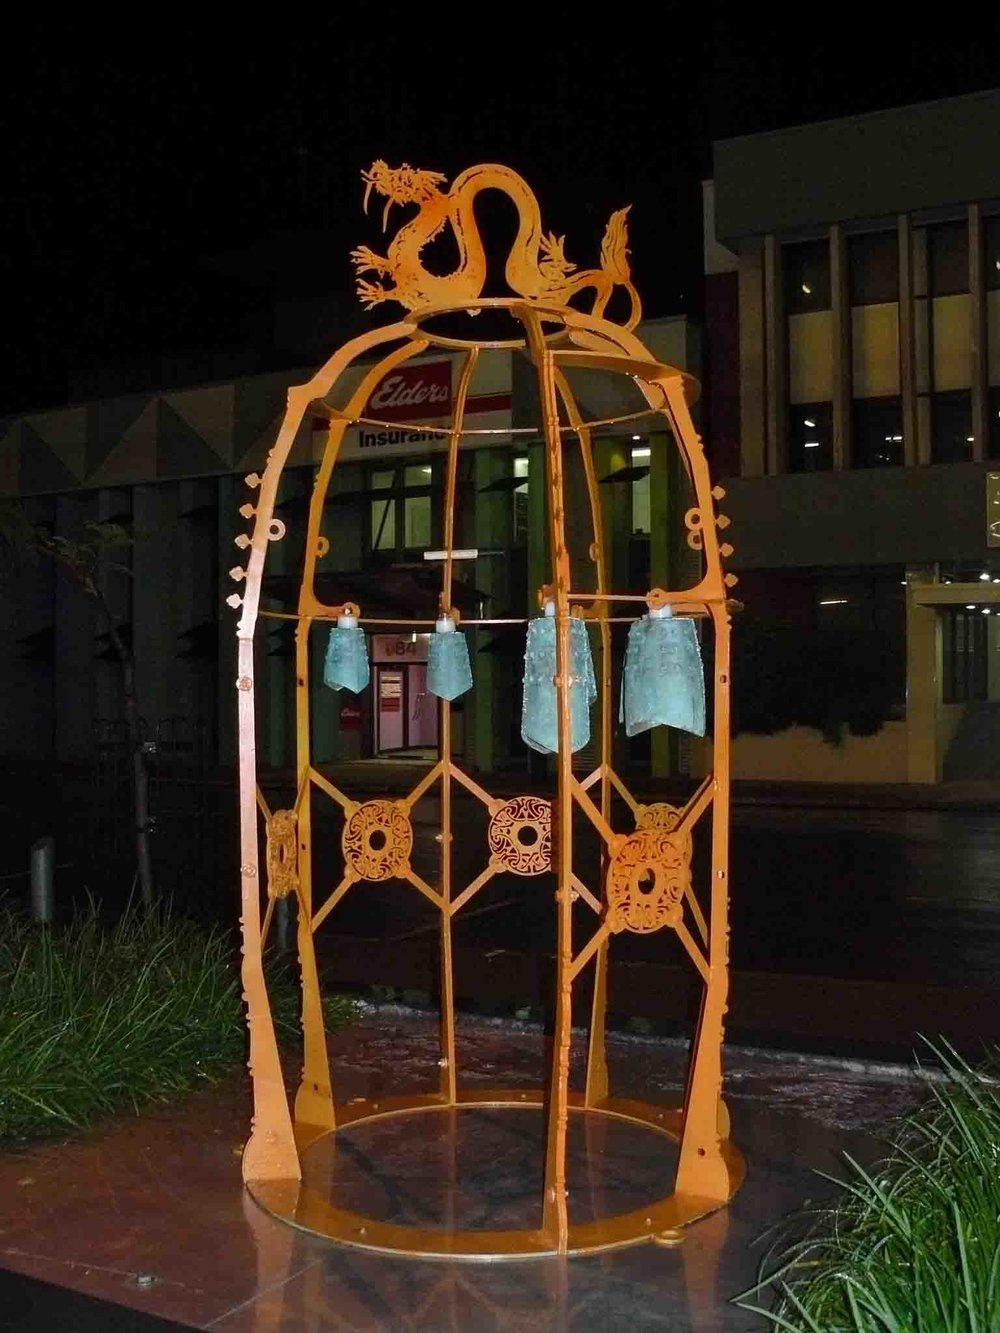 Hasell 'Chime Conservatory' Chinatown Darwin, 2008